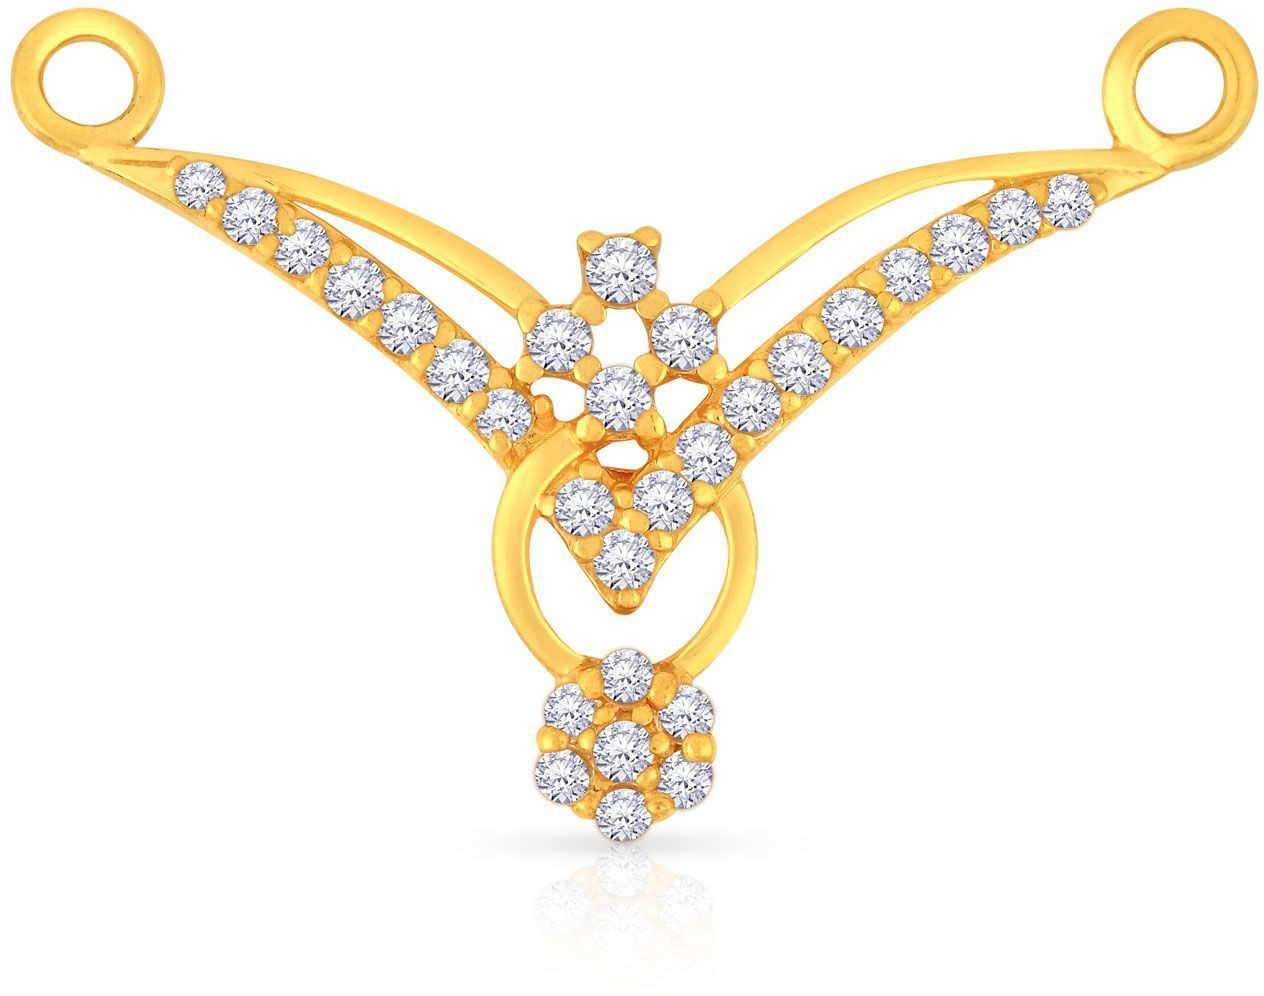 Deals - Kalol - Malbar, TBZ, Gili <br> Gold & Diamond Jewellery<br> Category - jewellery<br> Business - Flipkart.com